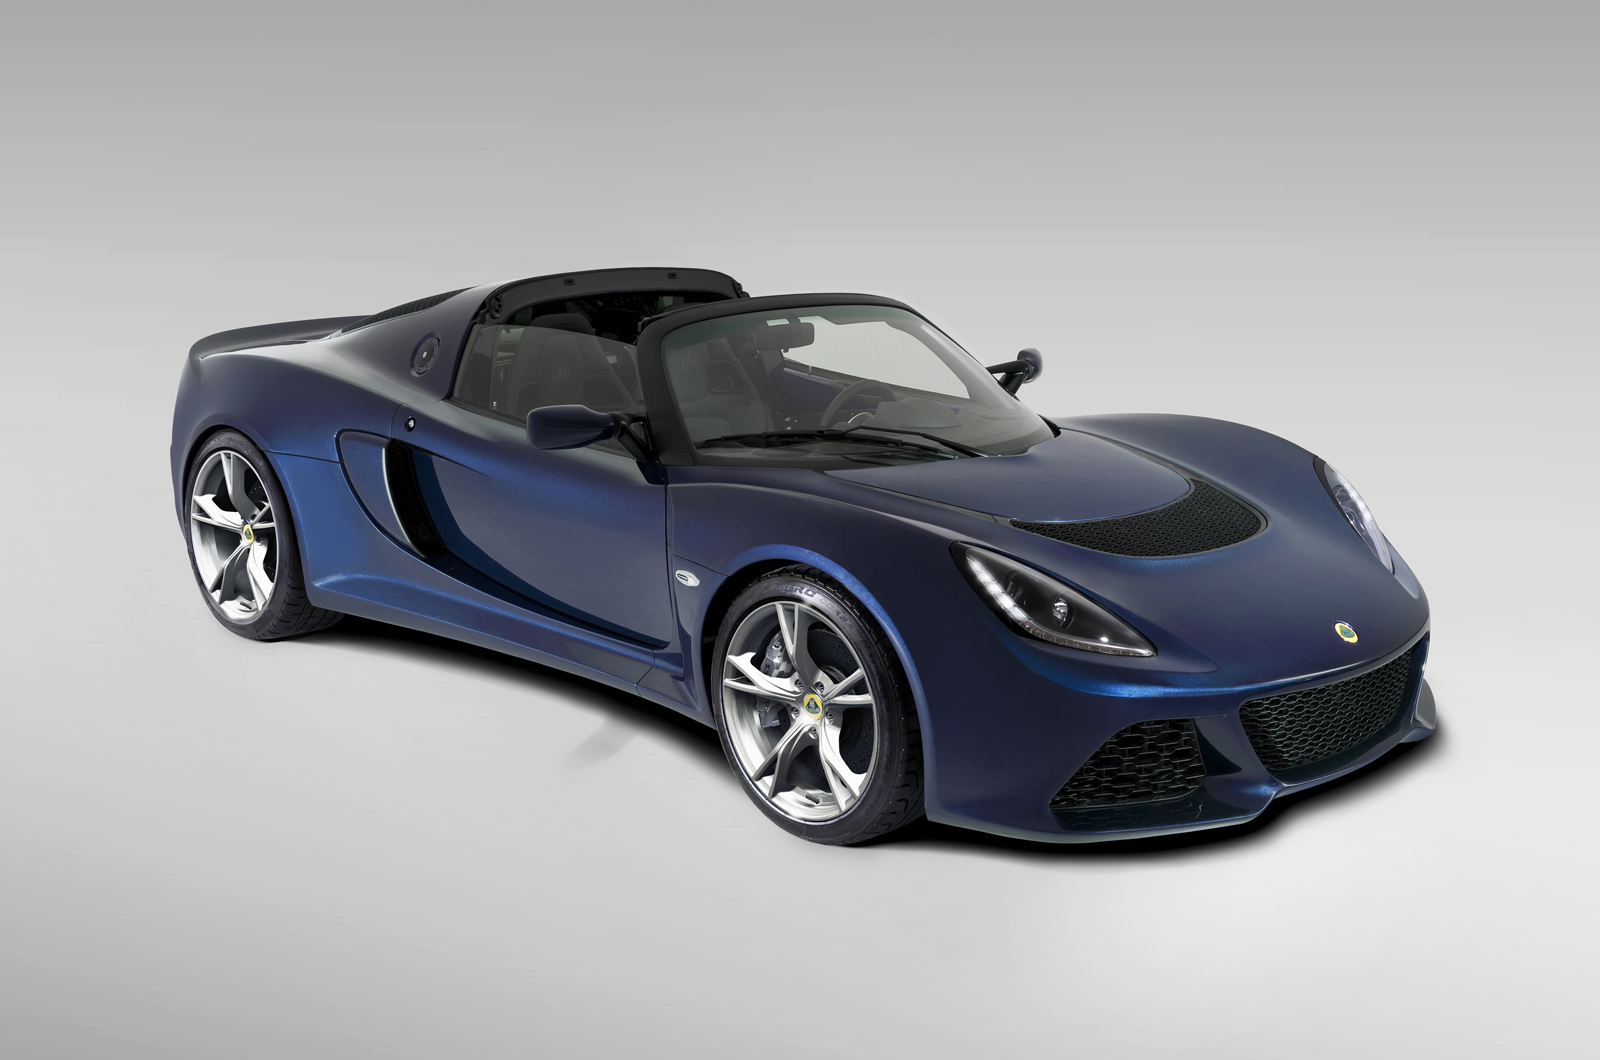 Video: 2014 Lotus Exige S Roadster Teased - GTspirit